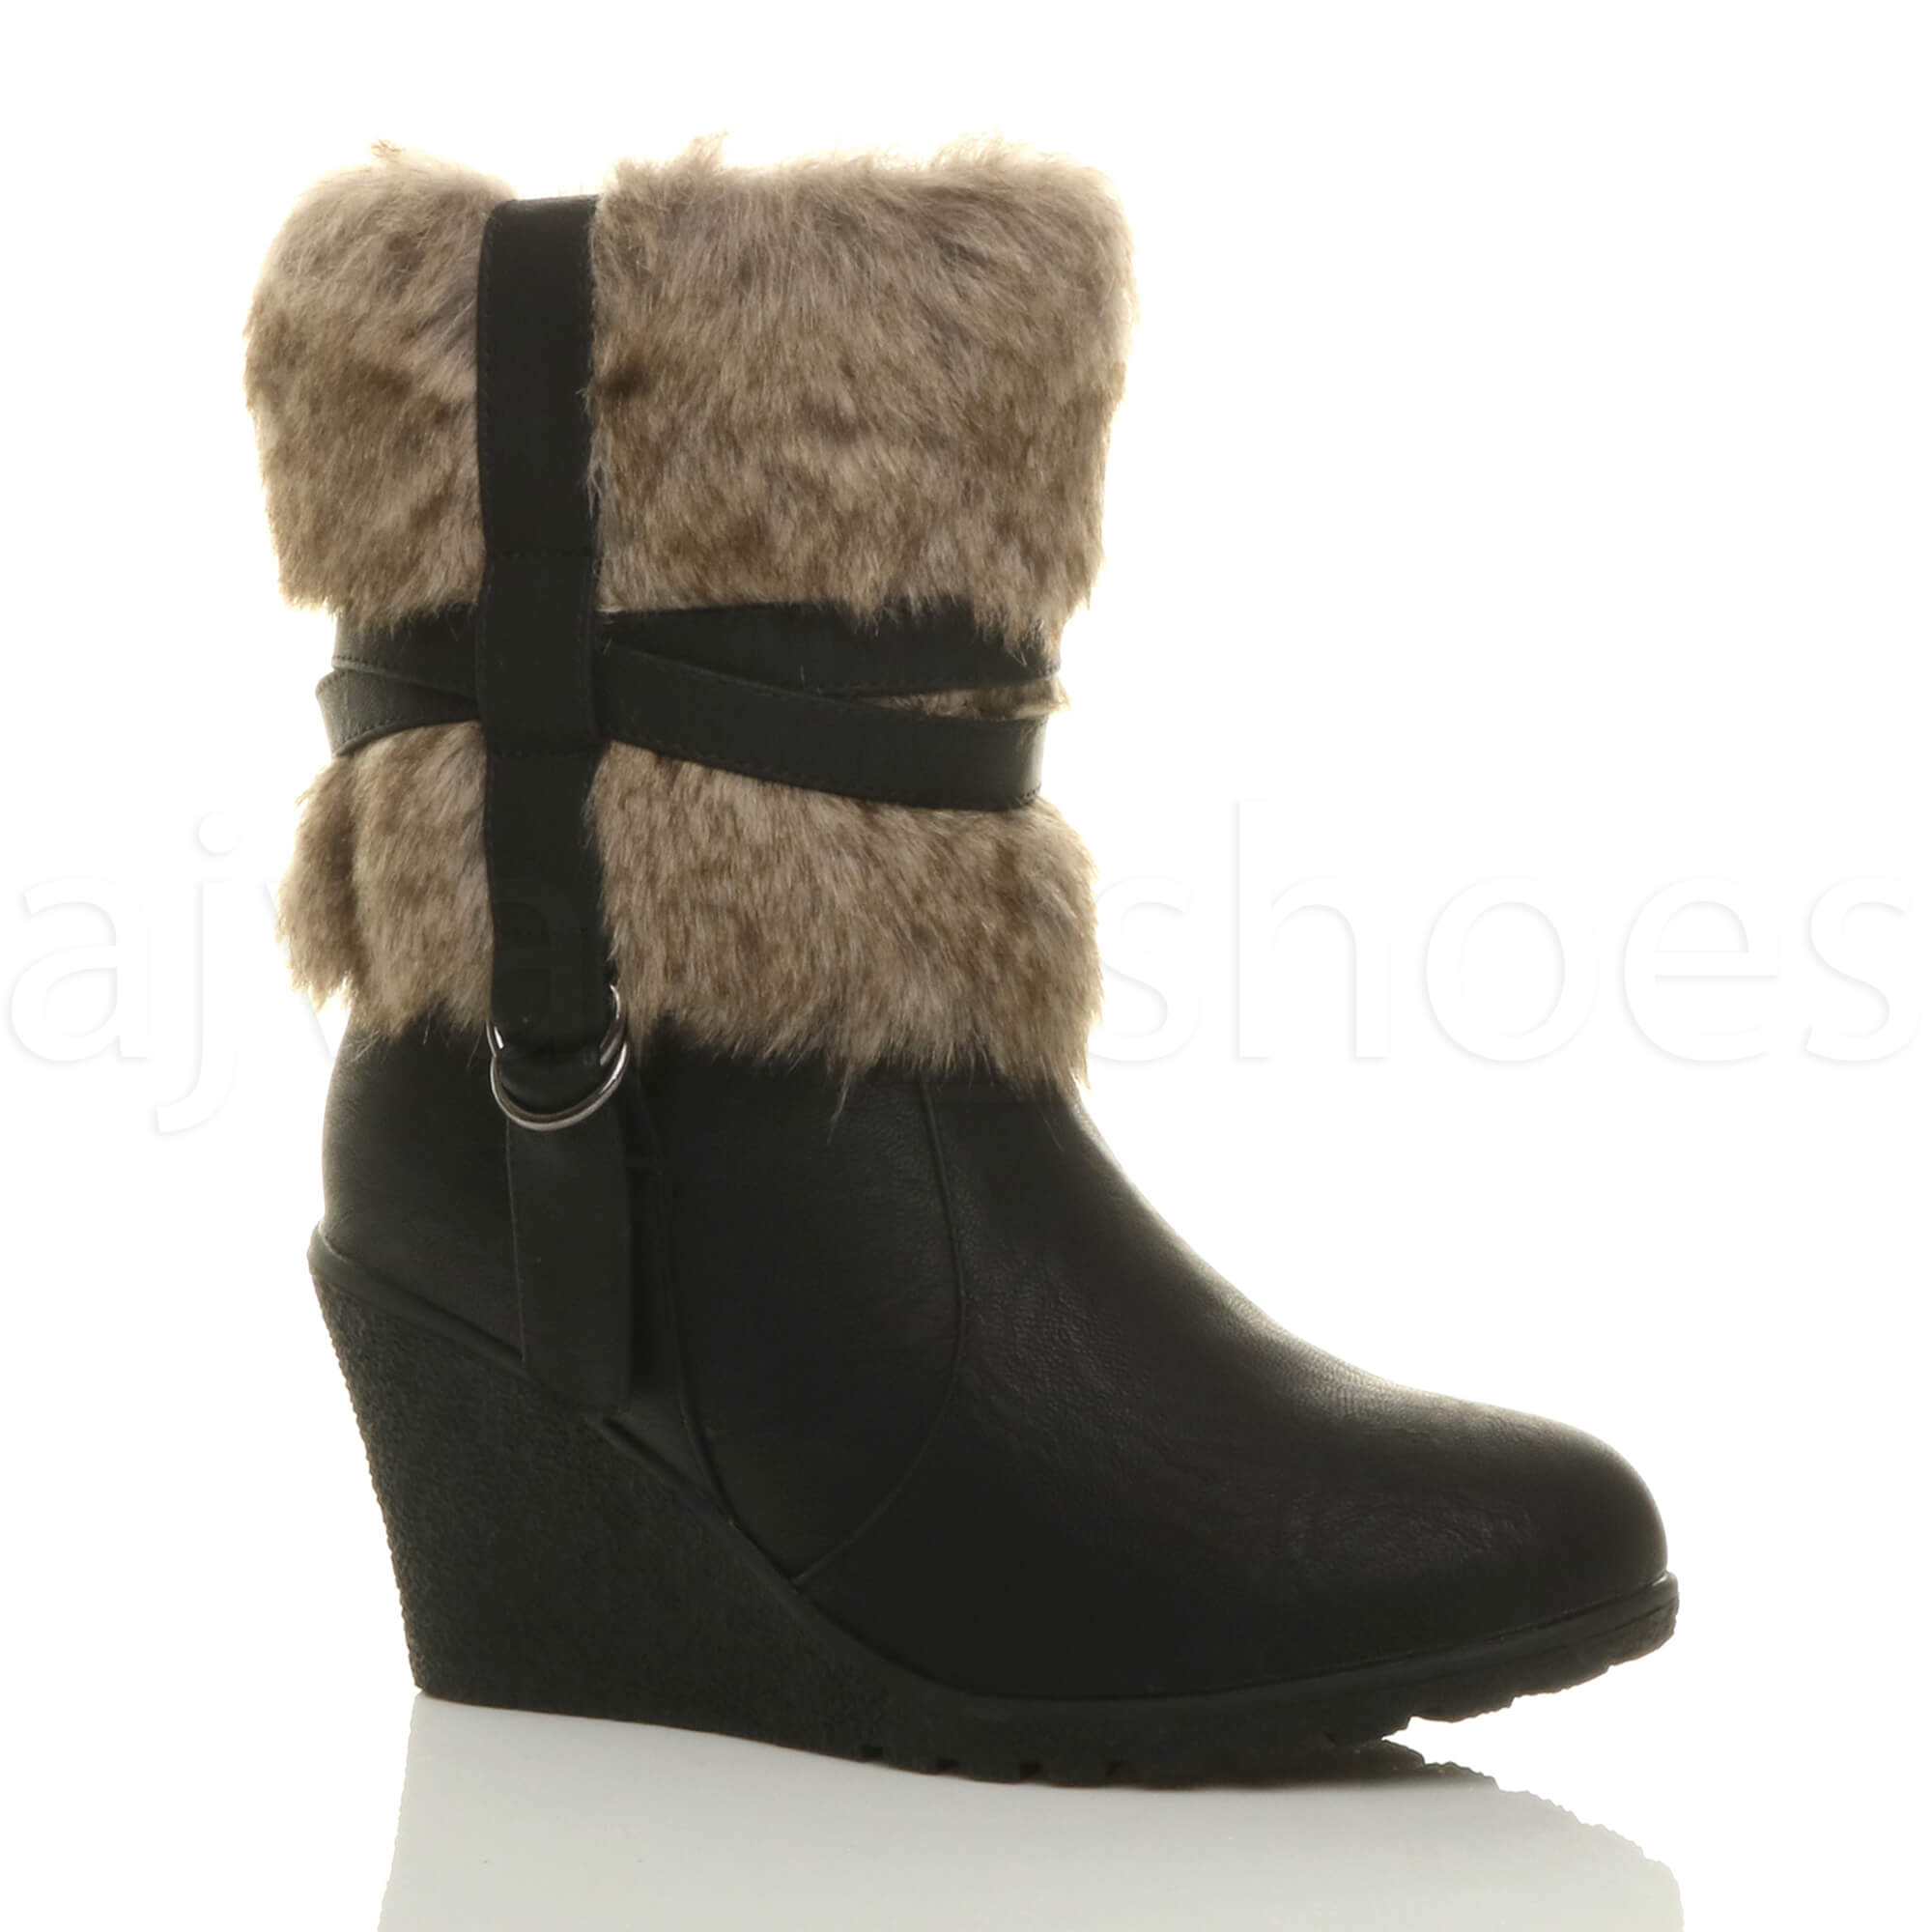 8b7e9e3822b WOMENS LADIES MID WEDGE HEEL FUR LINED CUFF ZIP STRAP ANKLE BOOTS ...